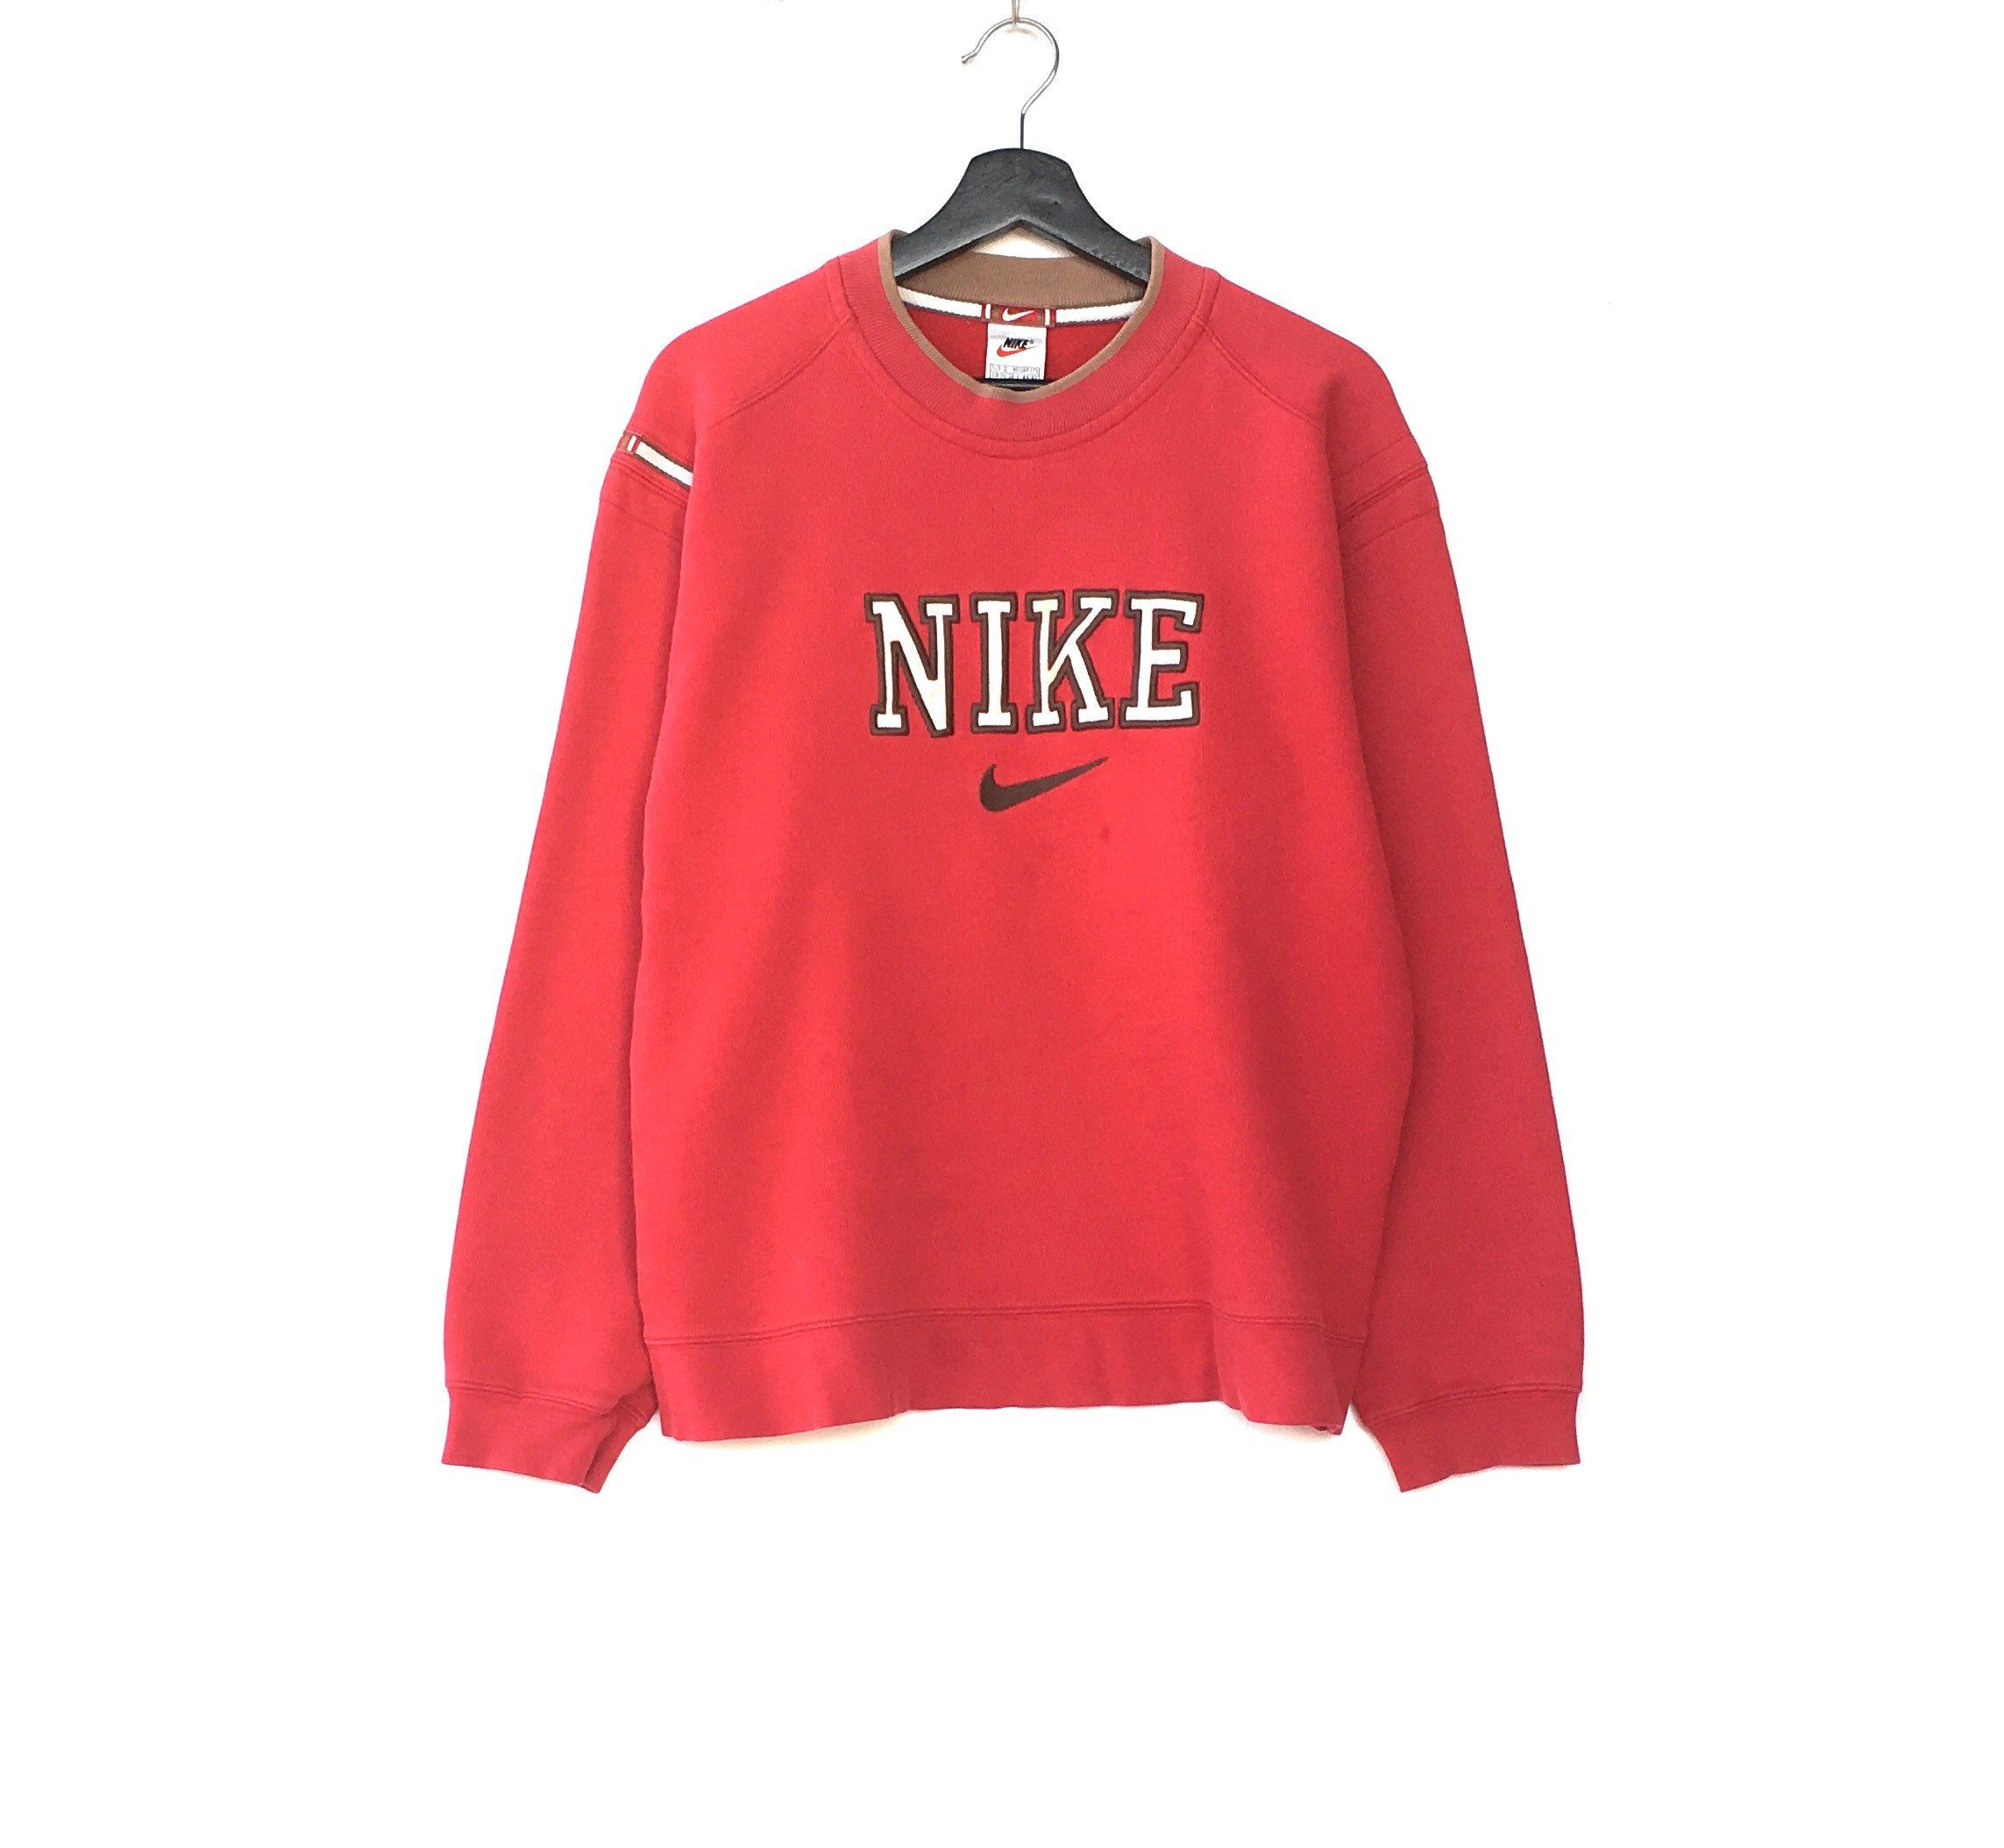 1ae389ec76a5 Excited to share the latest addition to my  etsy shop  Rare!! Vintage NIKE  spellout Big Logo Men Clothing Sweatshirt Pullover Jumper Sportwear  Activewear ...